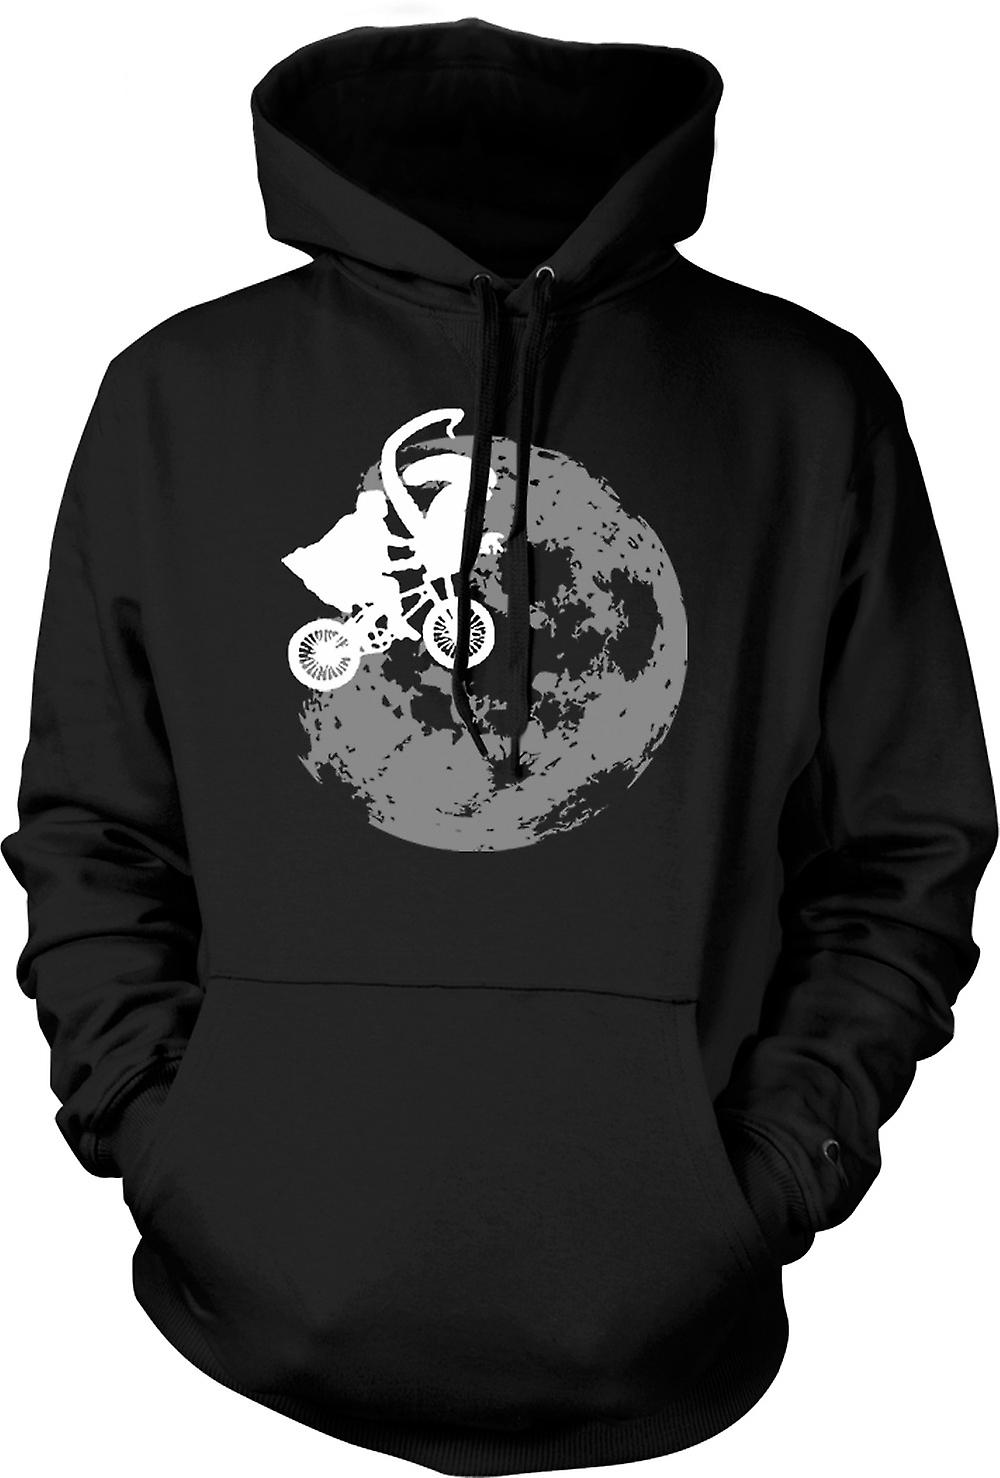 Mens Hoodie - ET Alien - Pop Art - Cool - Sci Fi